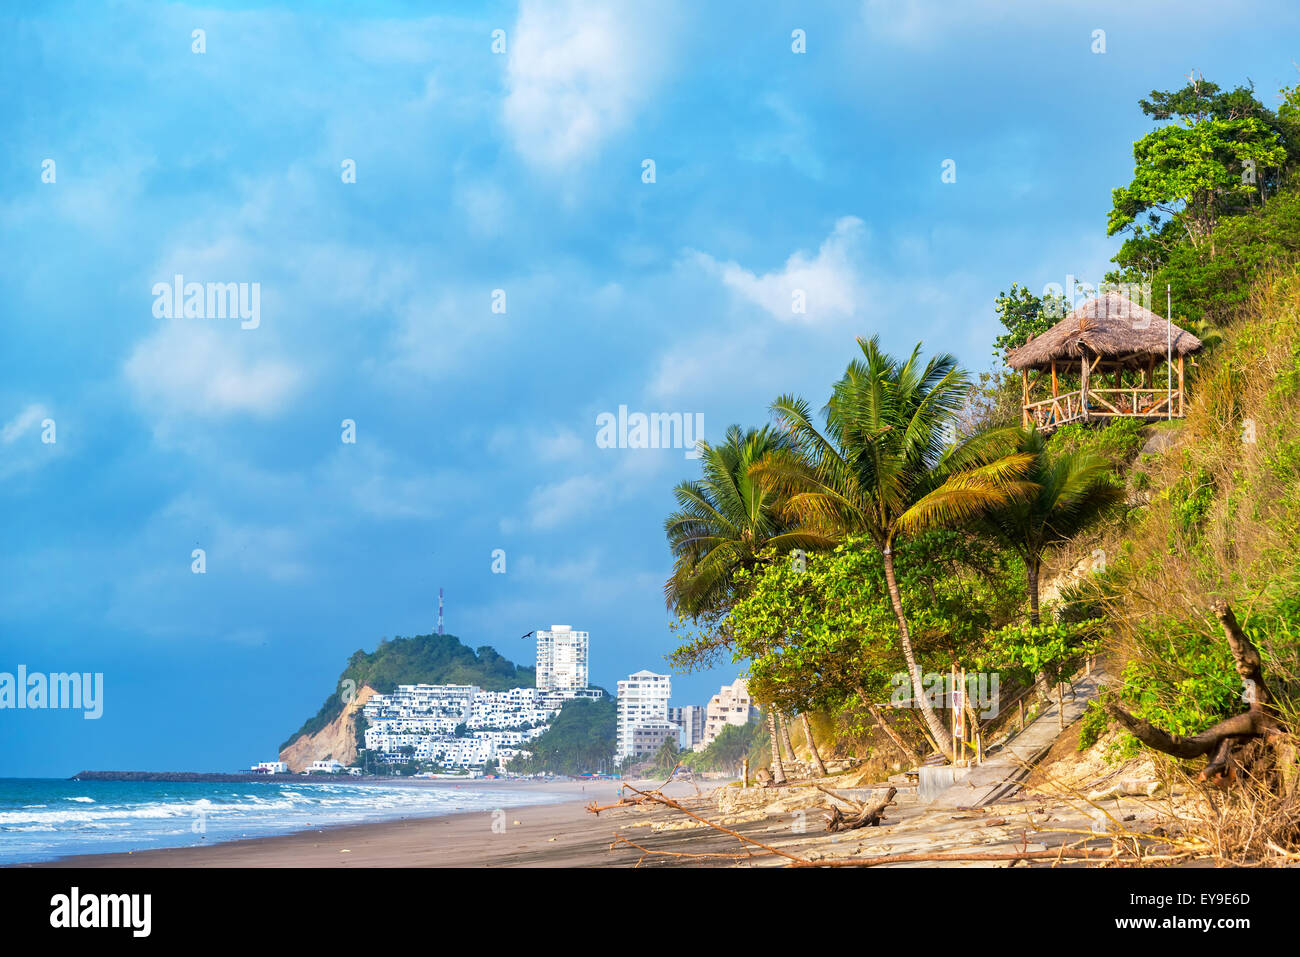 Beach in Same, Ecuador with a resort visible in the background - Stock Image